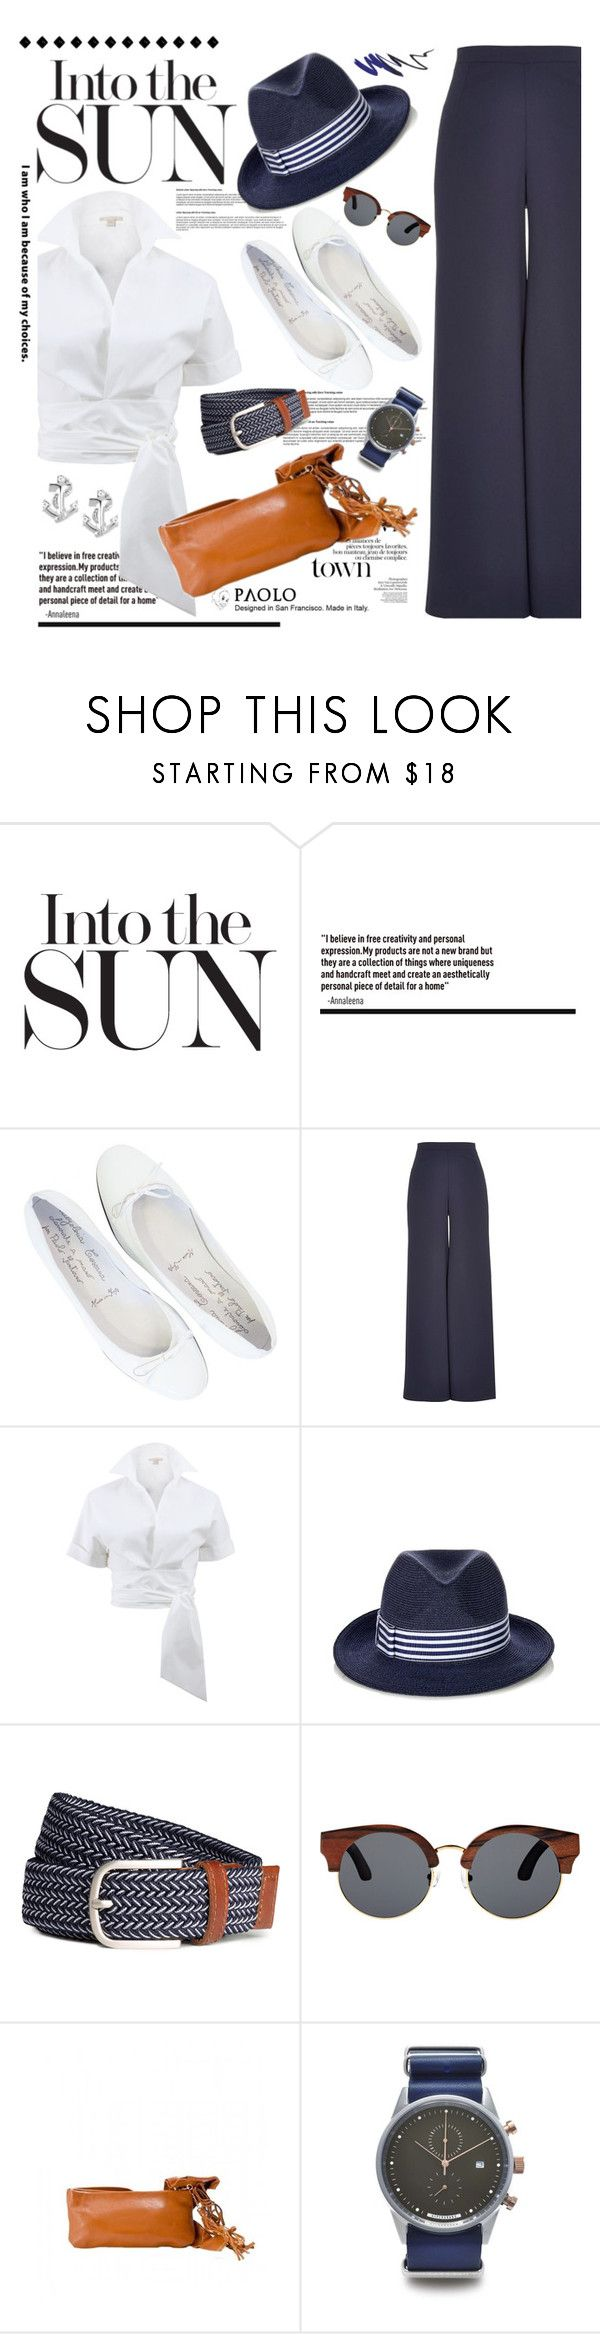 """""""PaoloShoes Summer Look"""" by spenderellastyle ❤ liked on Polyvore featuring River Island, Michael Kors, Eugenia Kim, Finlay & Co., HyperGrand and Betsey Johnson"""